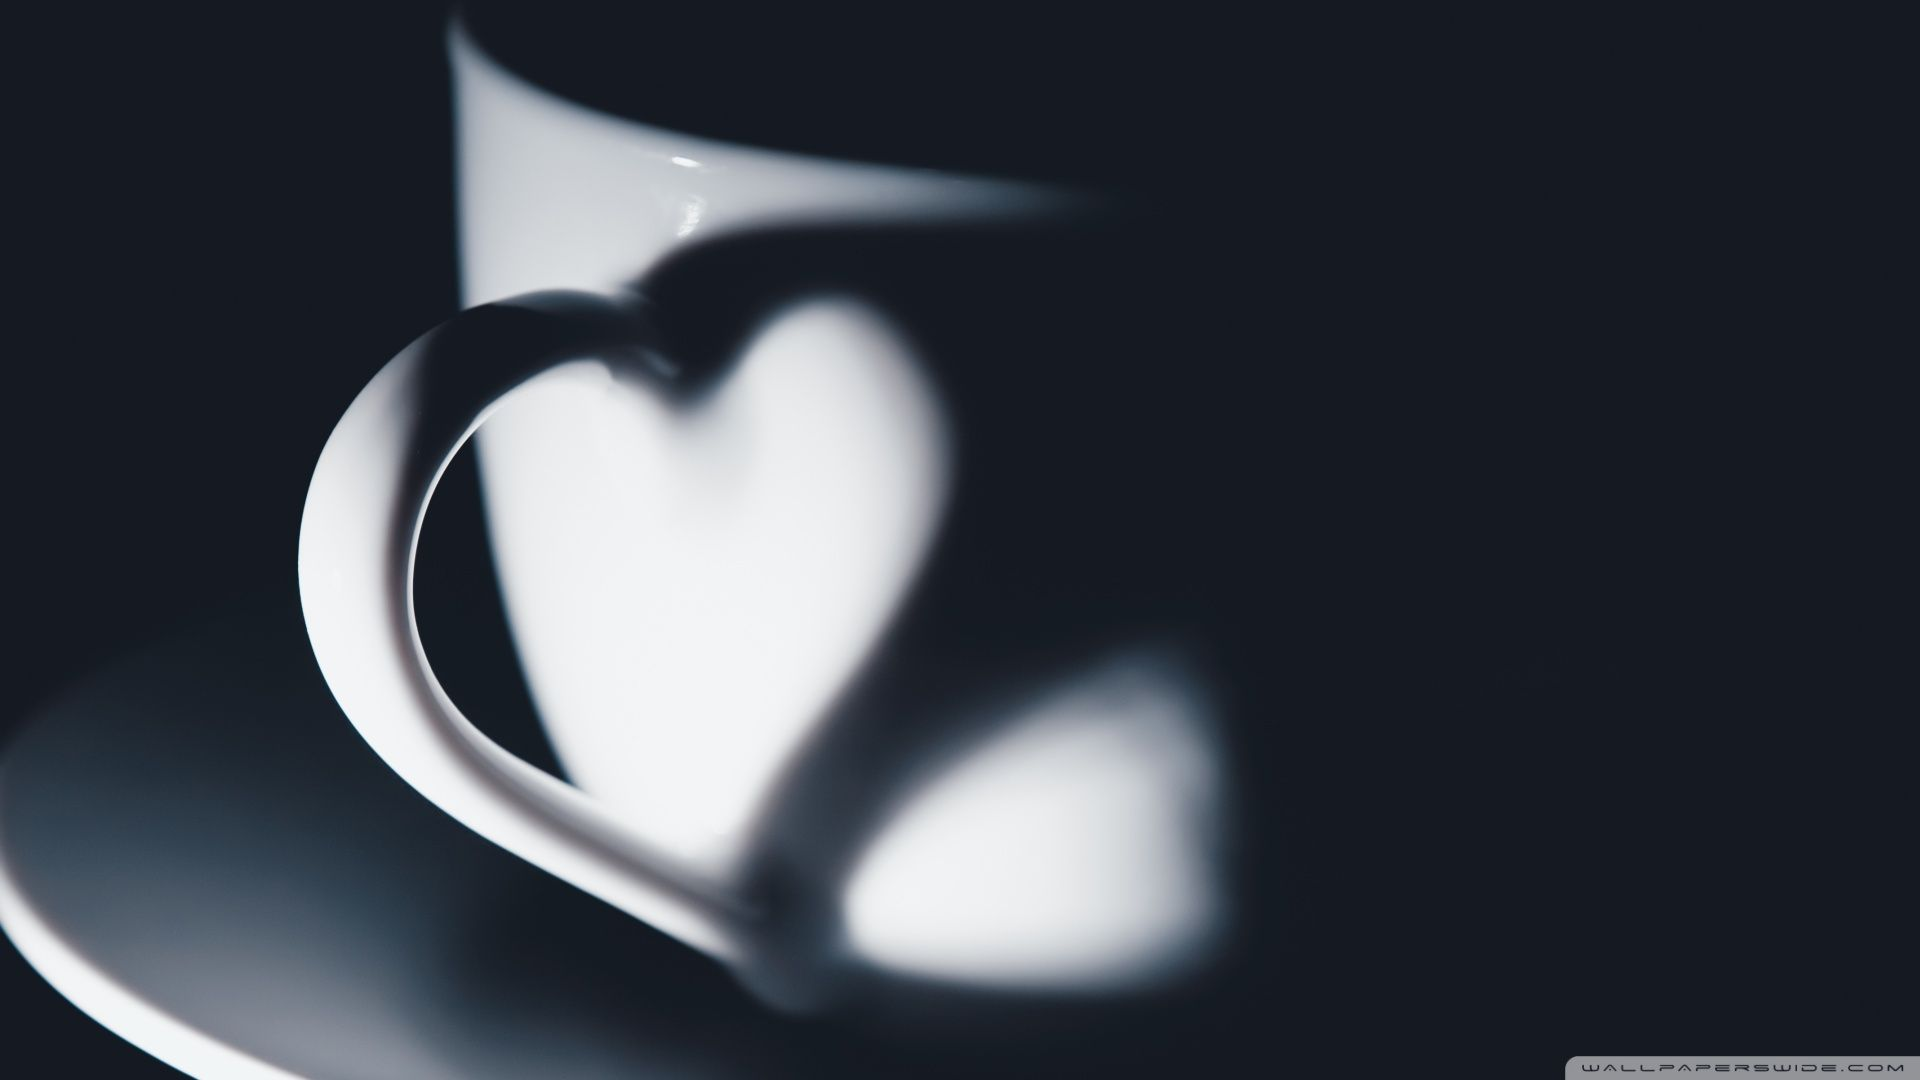 Coffee Lovers Love Hd Wallpapers: Milk And Coffee HD Desktop Wallpaper Widescreen High